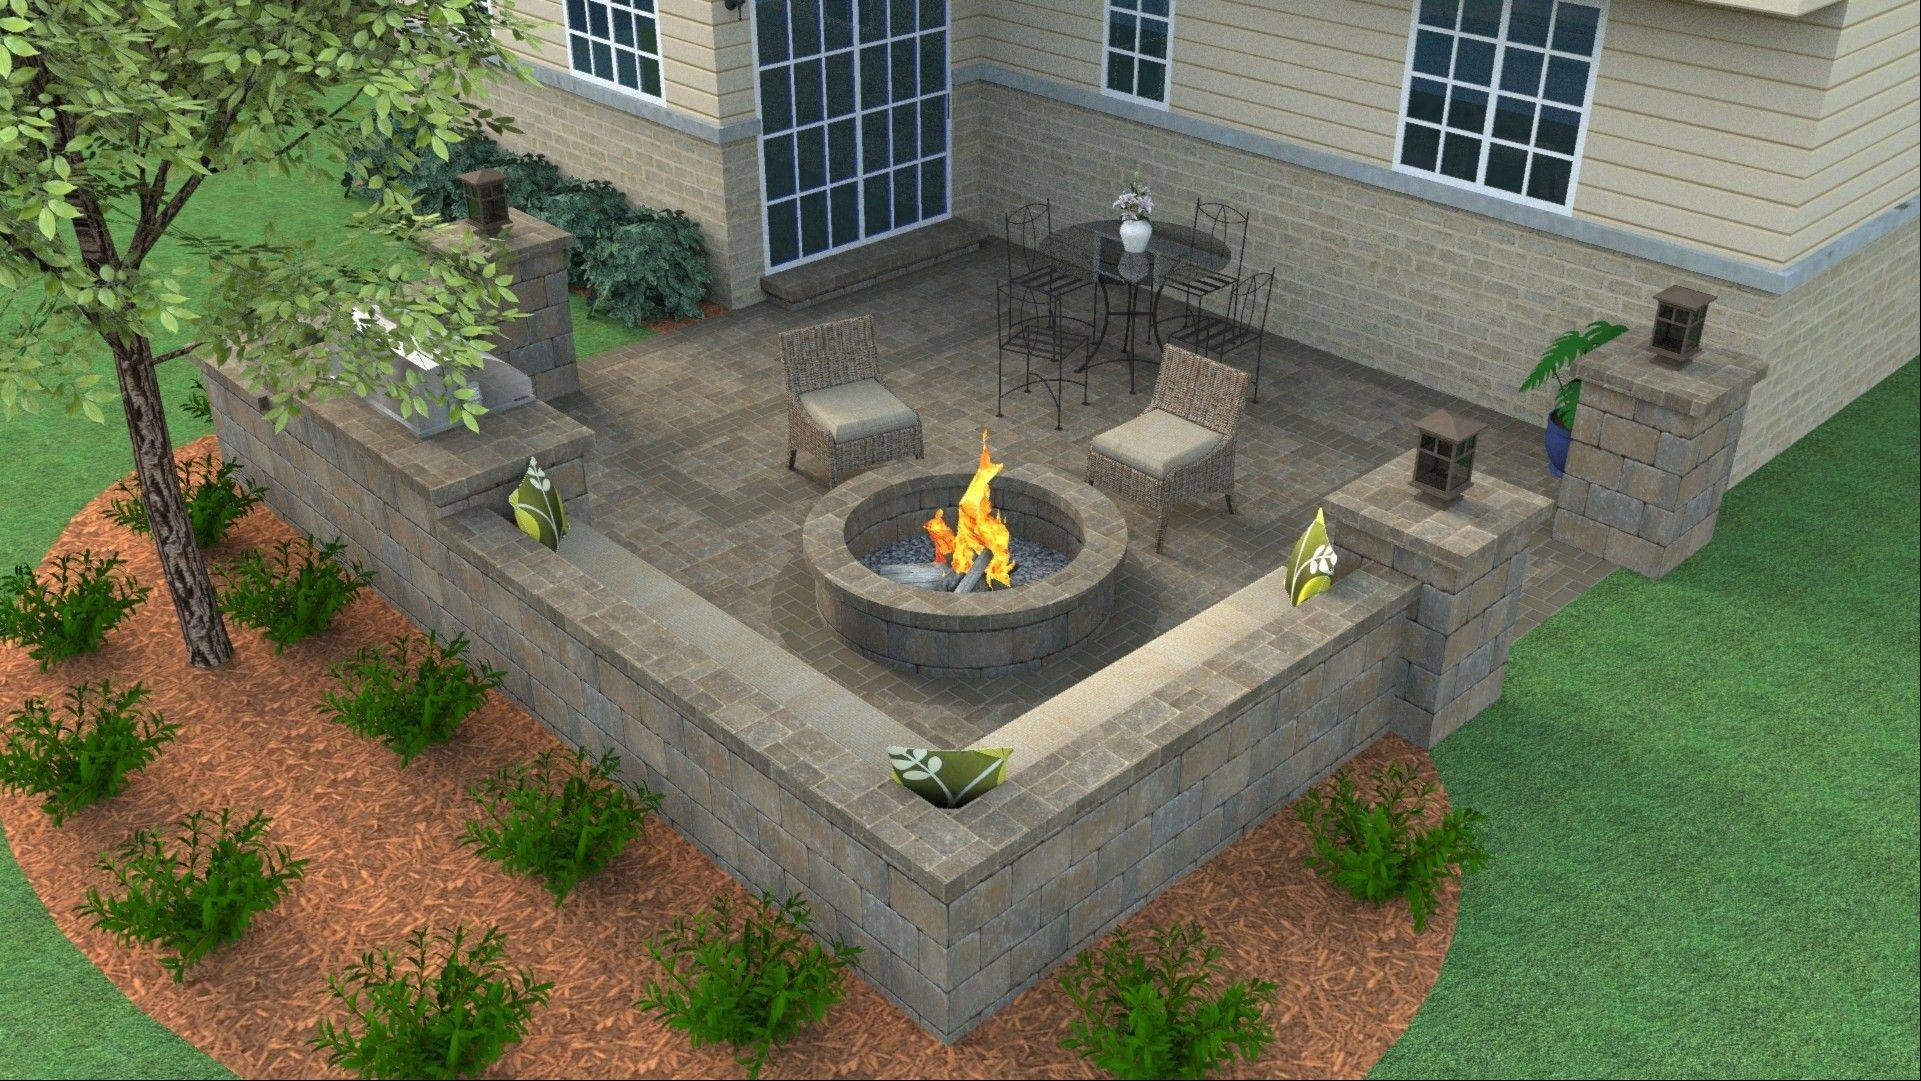 Zeeck Was Delighted With The Plan That Belgard Hardscapes Designed For Her  Backyard. She Won